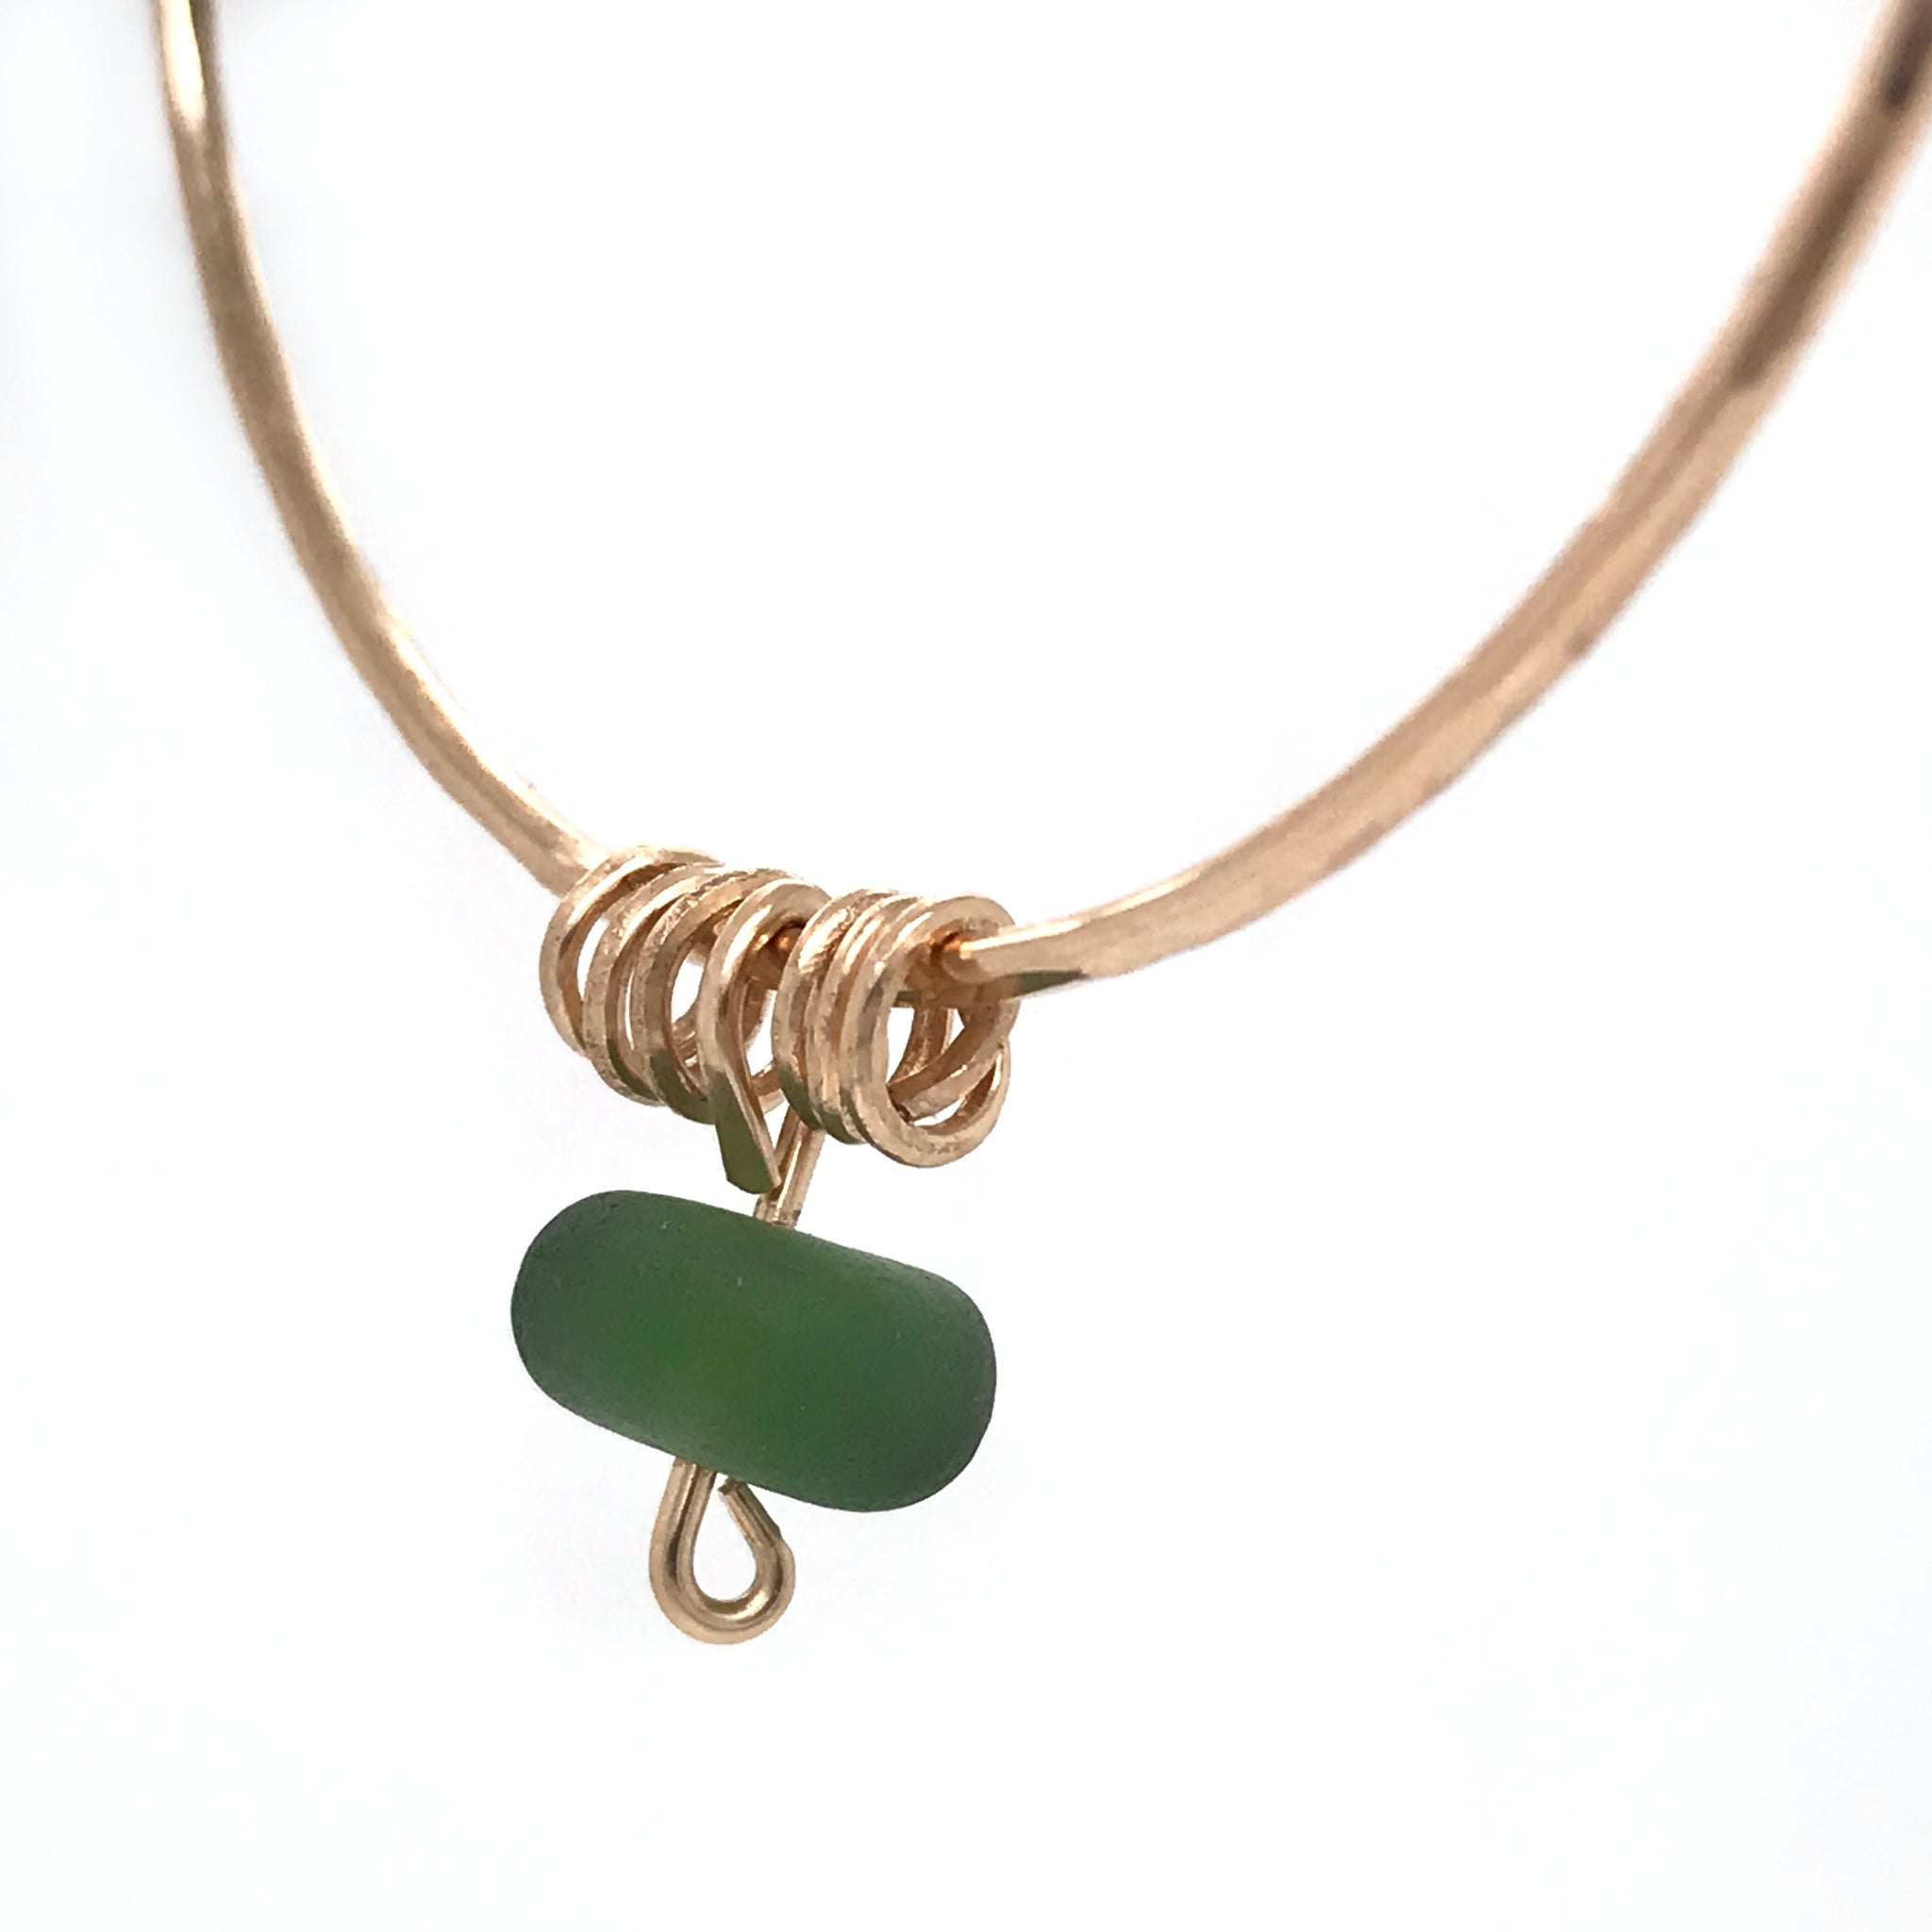 Gold bangle with Green Seaglass - kriket broadhurst artisan jewellery